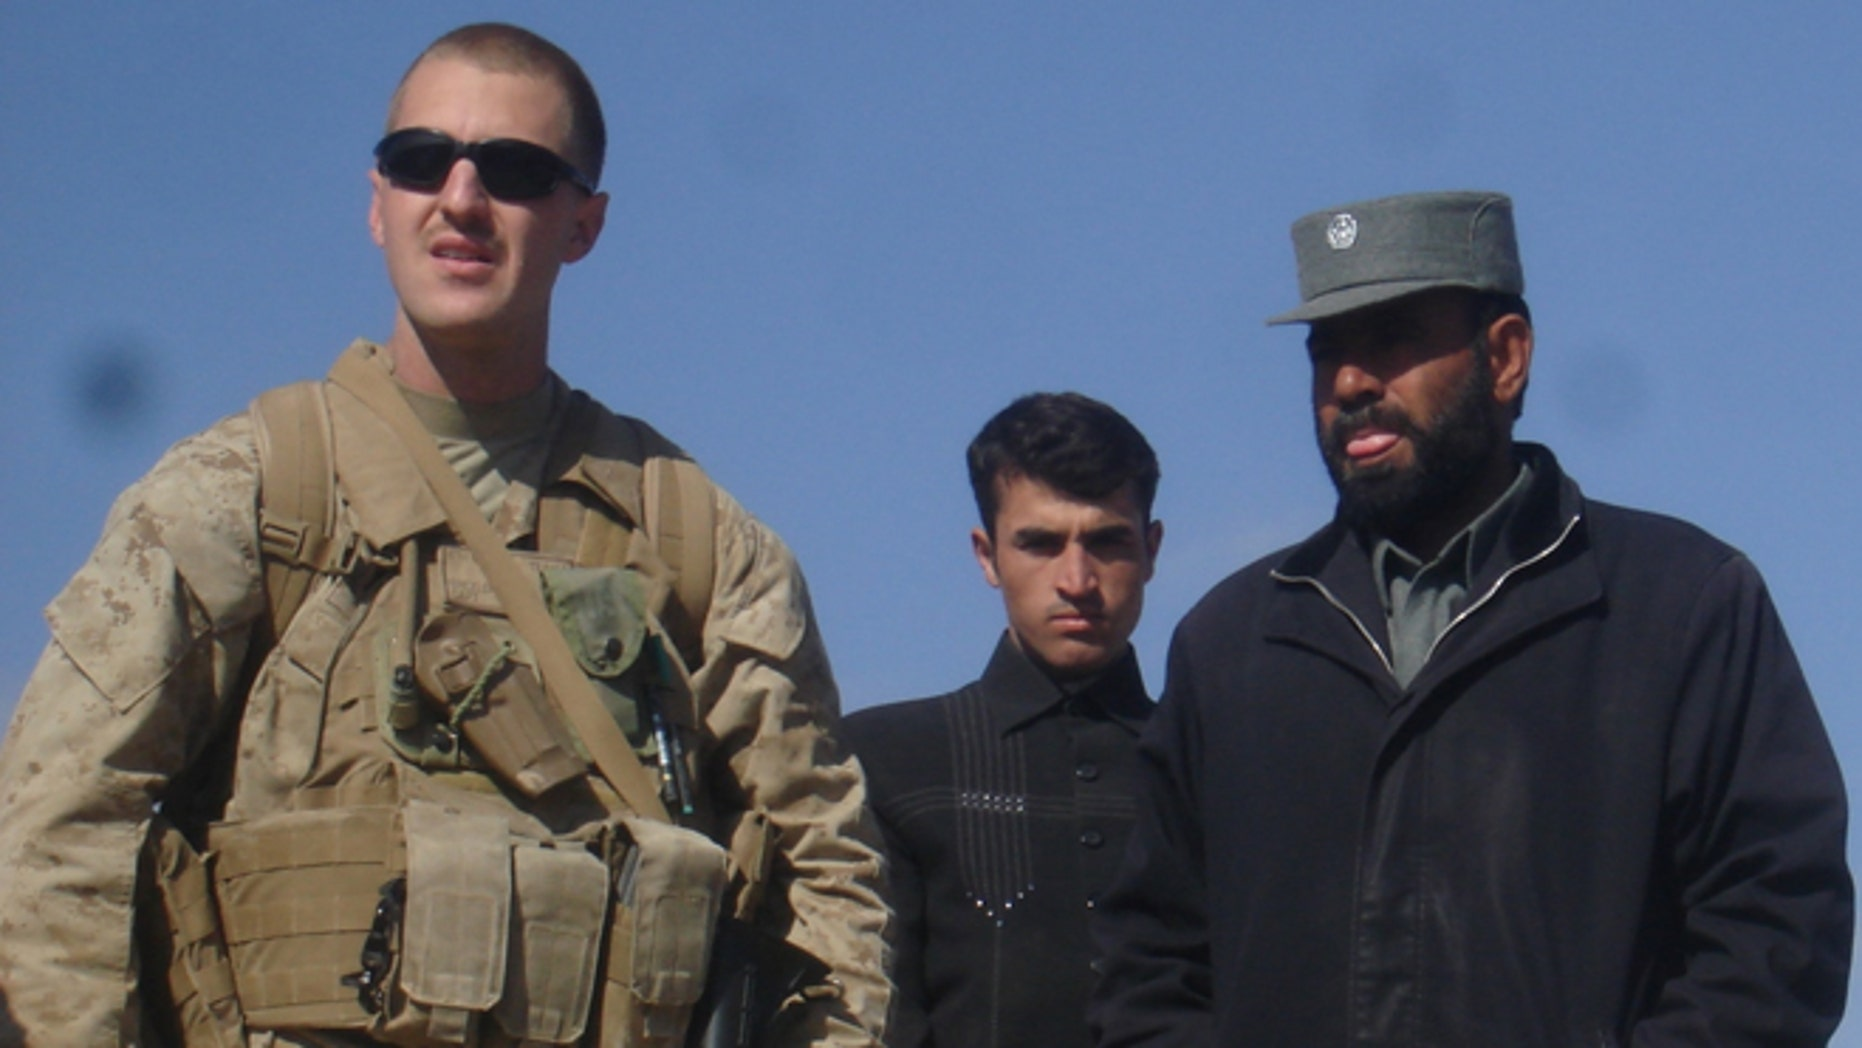 FILE: Marine reservist Jason Brezler, left, is pictured with Afghan police chief and alleged child abuser Sarwar Jan, whom Brezler warned his fellow Marines about before one of Jan's alleged victim's fatally shot three Marines.